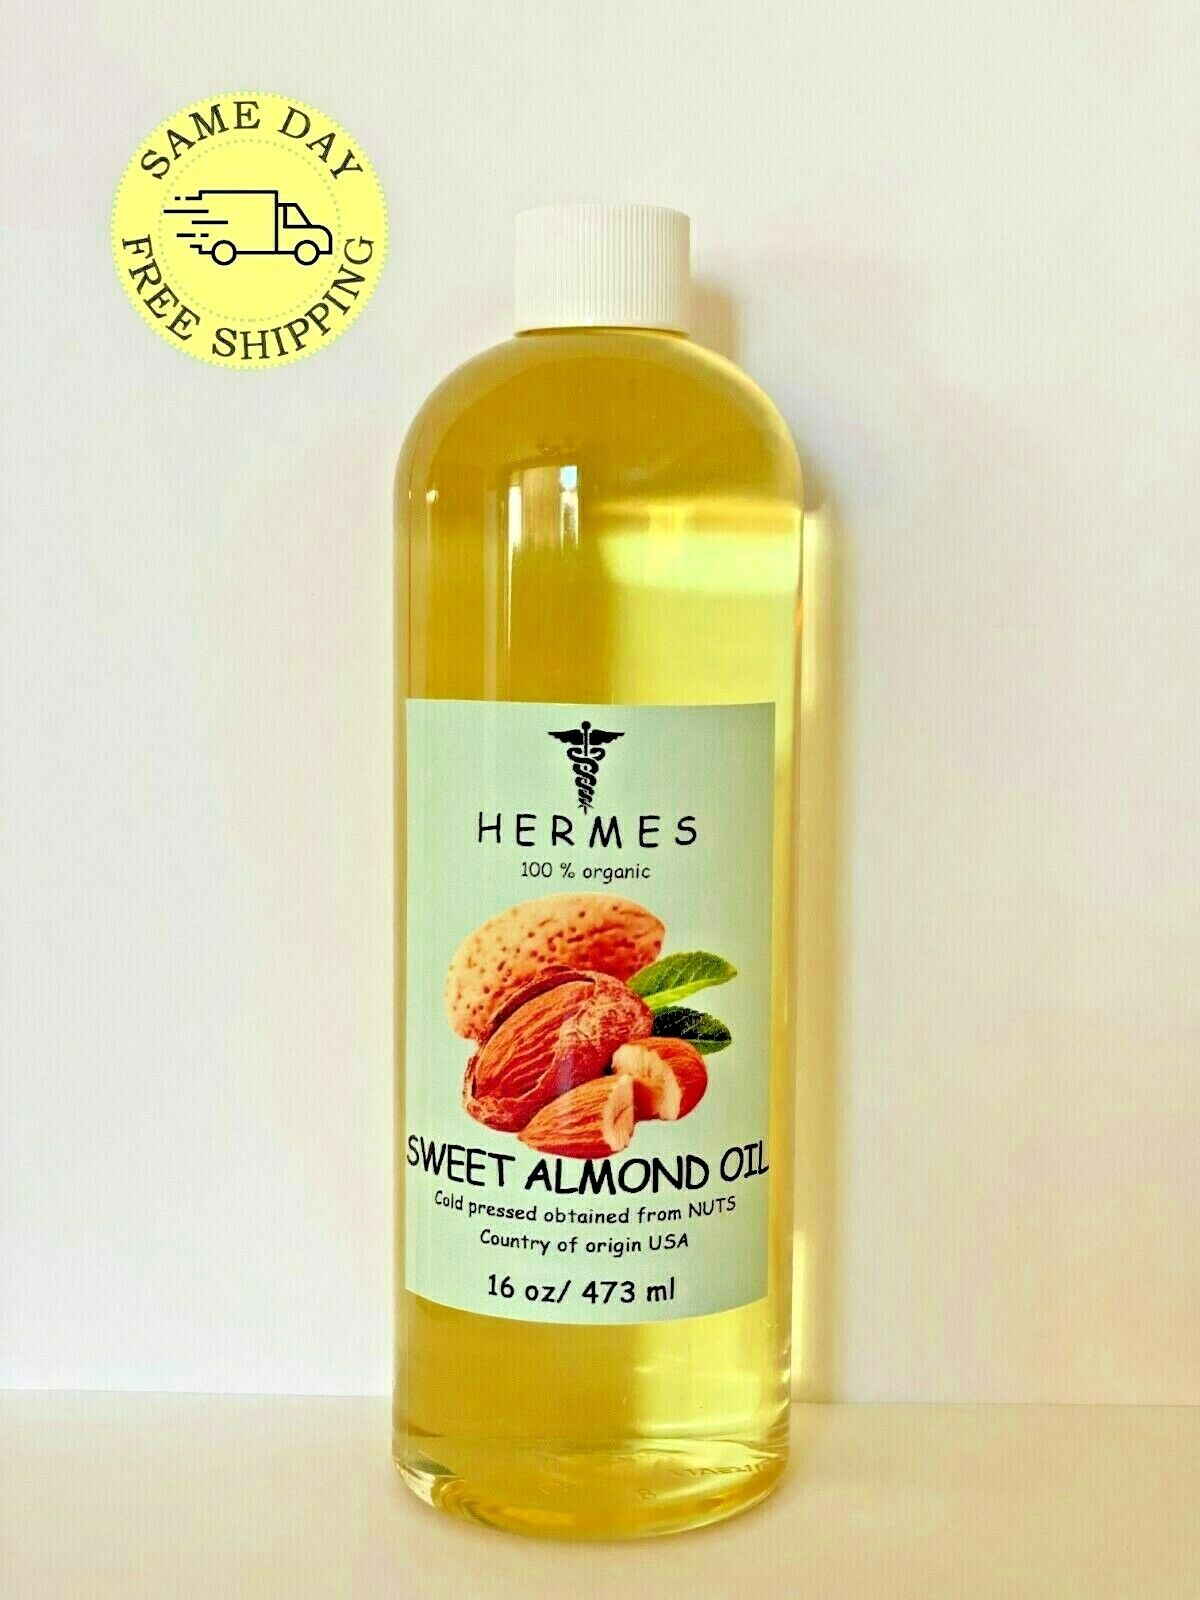 SWEET ALMOND OIL by HERMES ORGANIC COLD PRESSED 16 oz